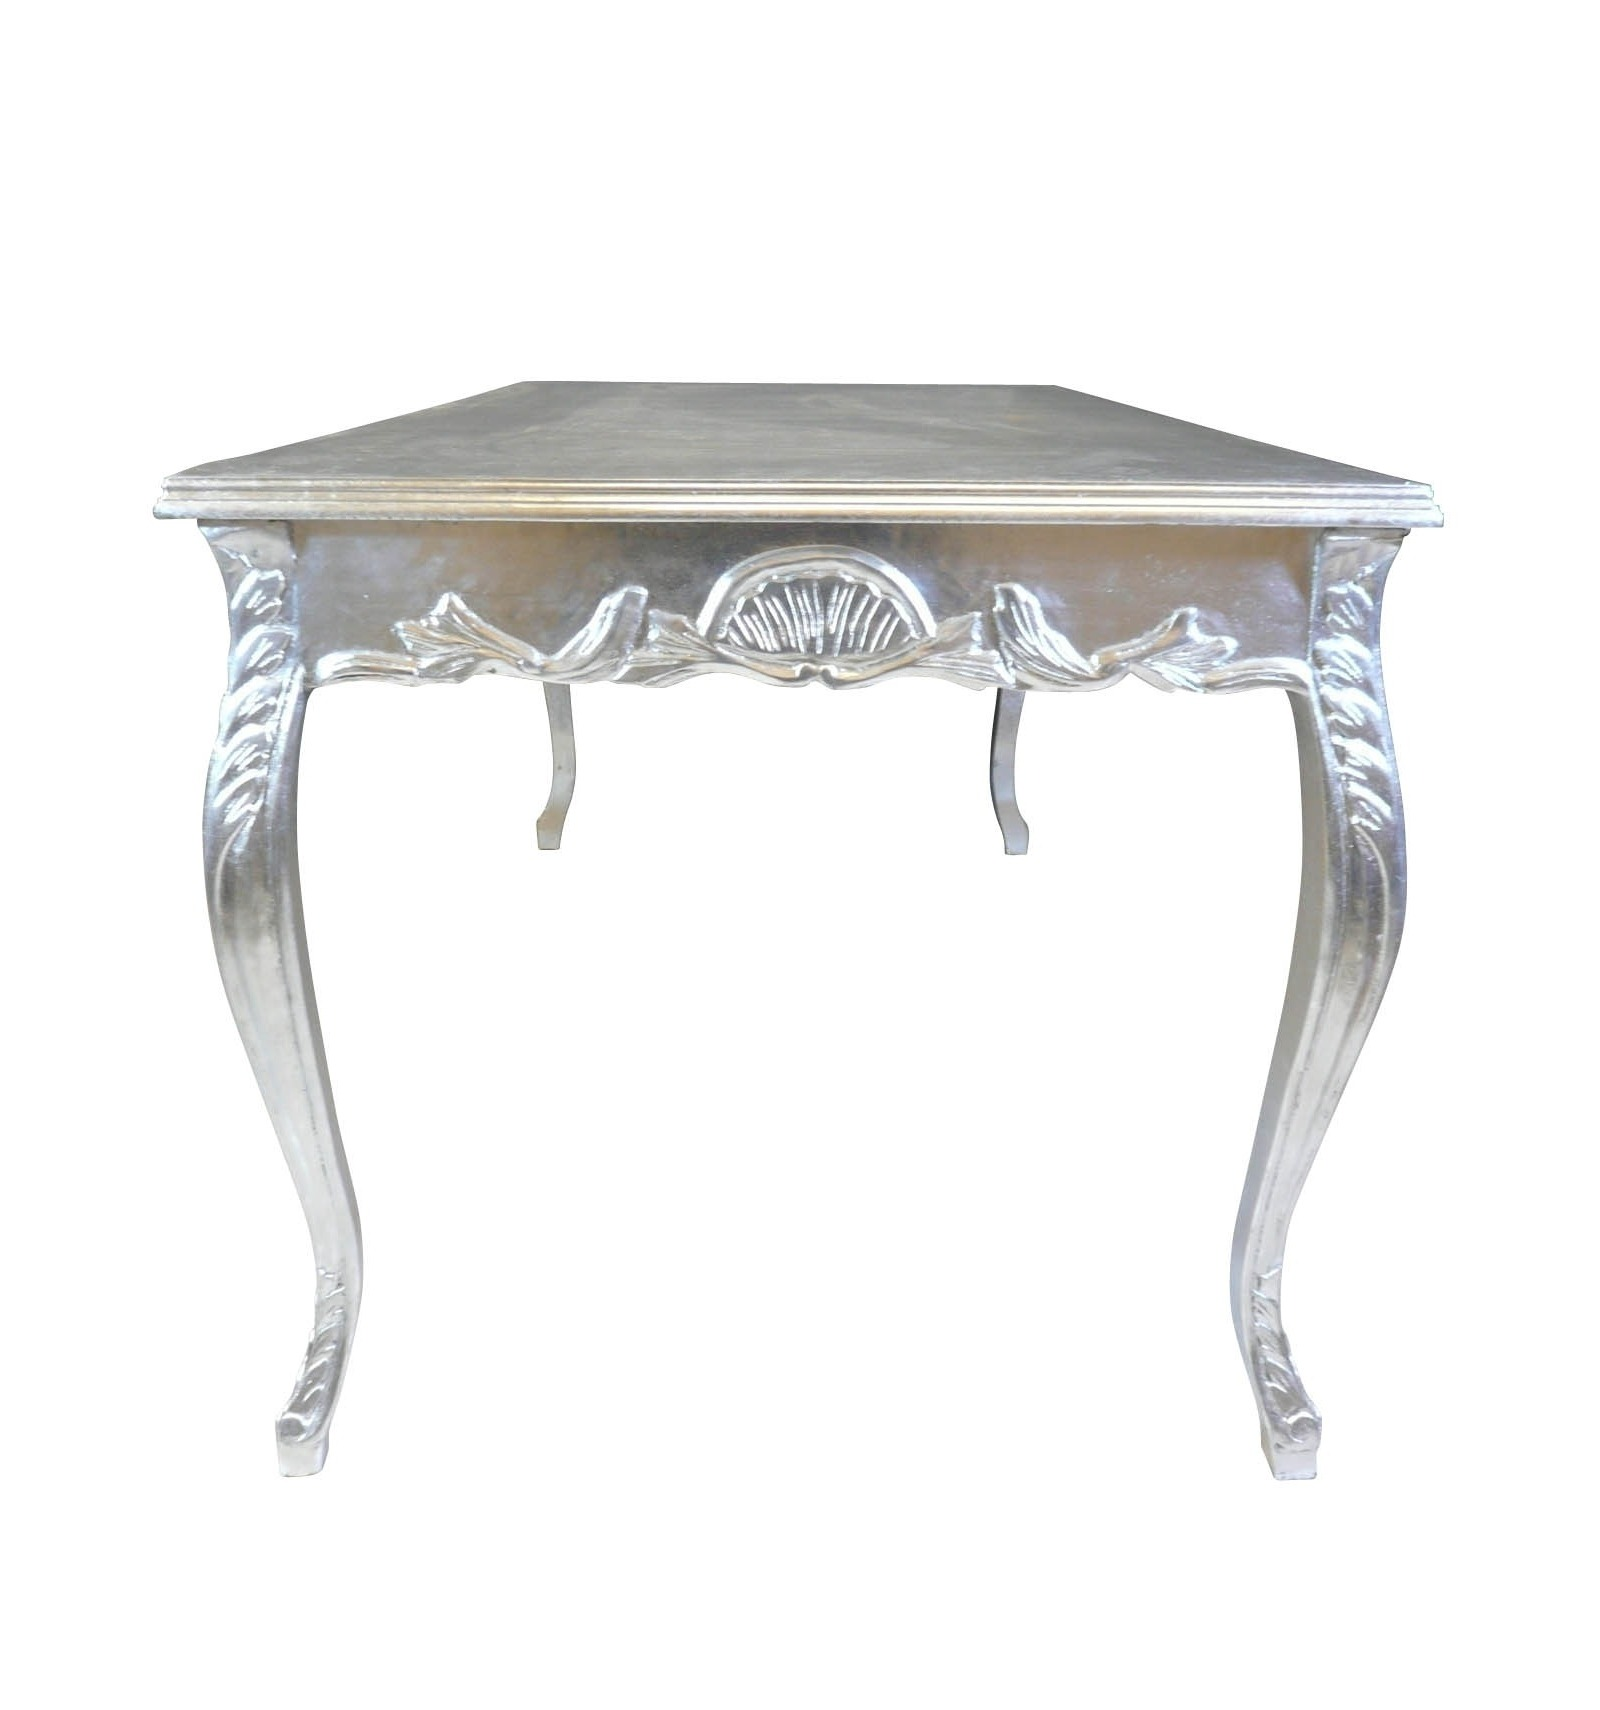 Silver baroque dining room table style furniture - Table baroque conforama ...